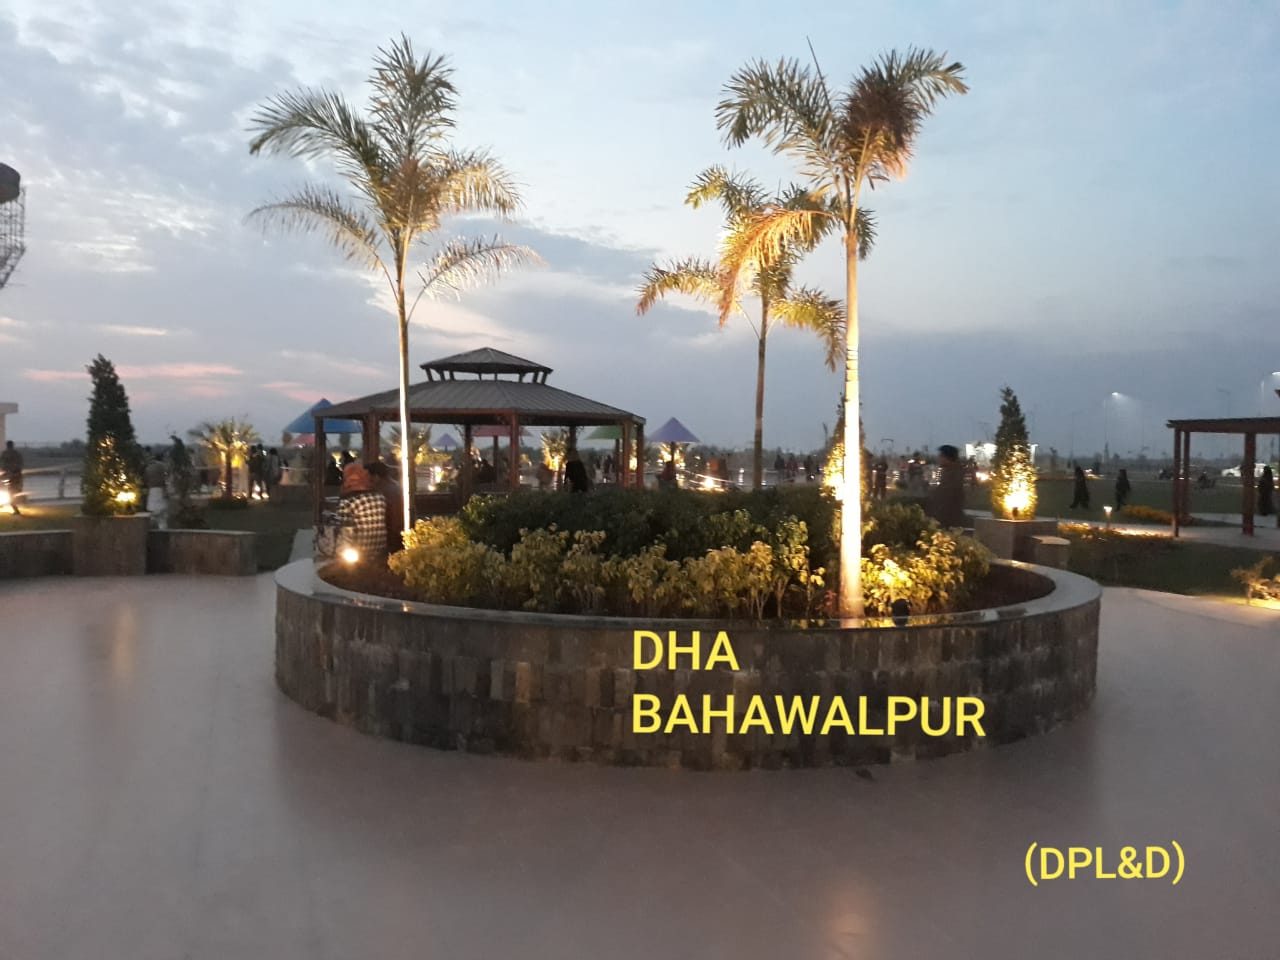 DHA Bahawalpur Night View (2)